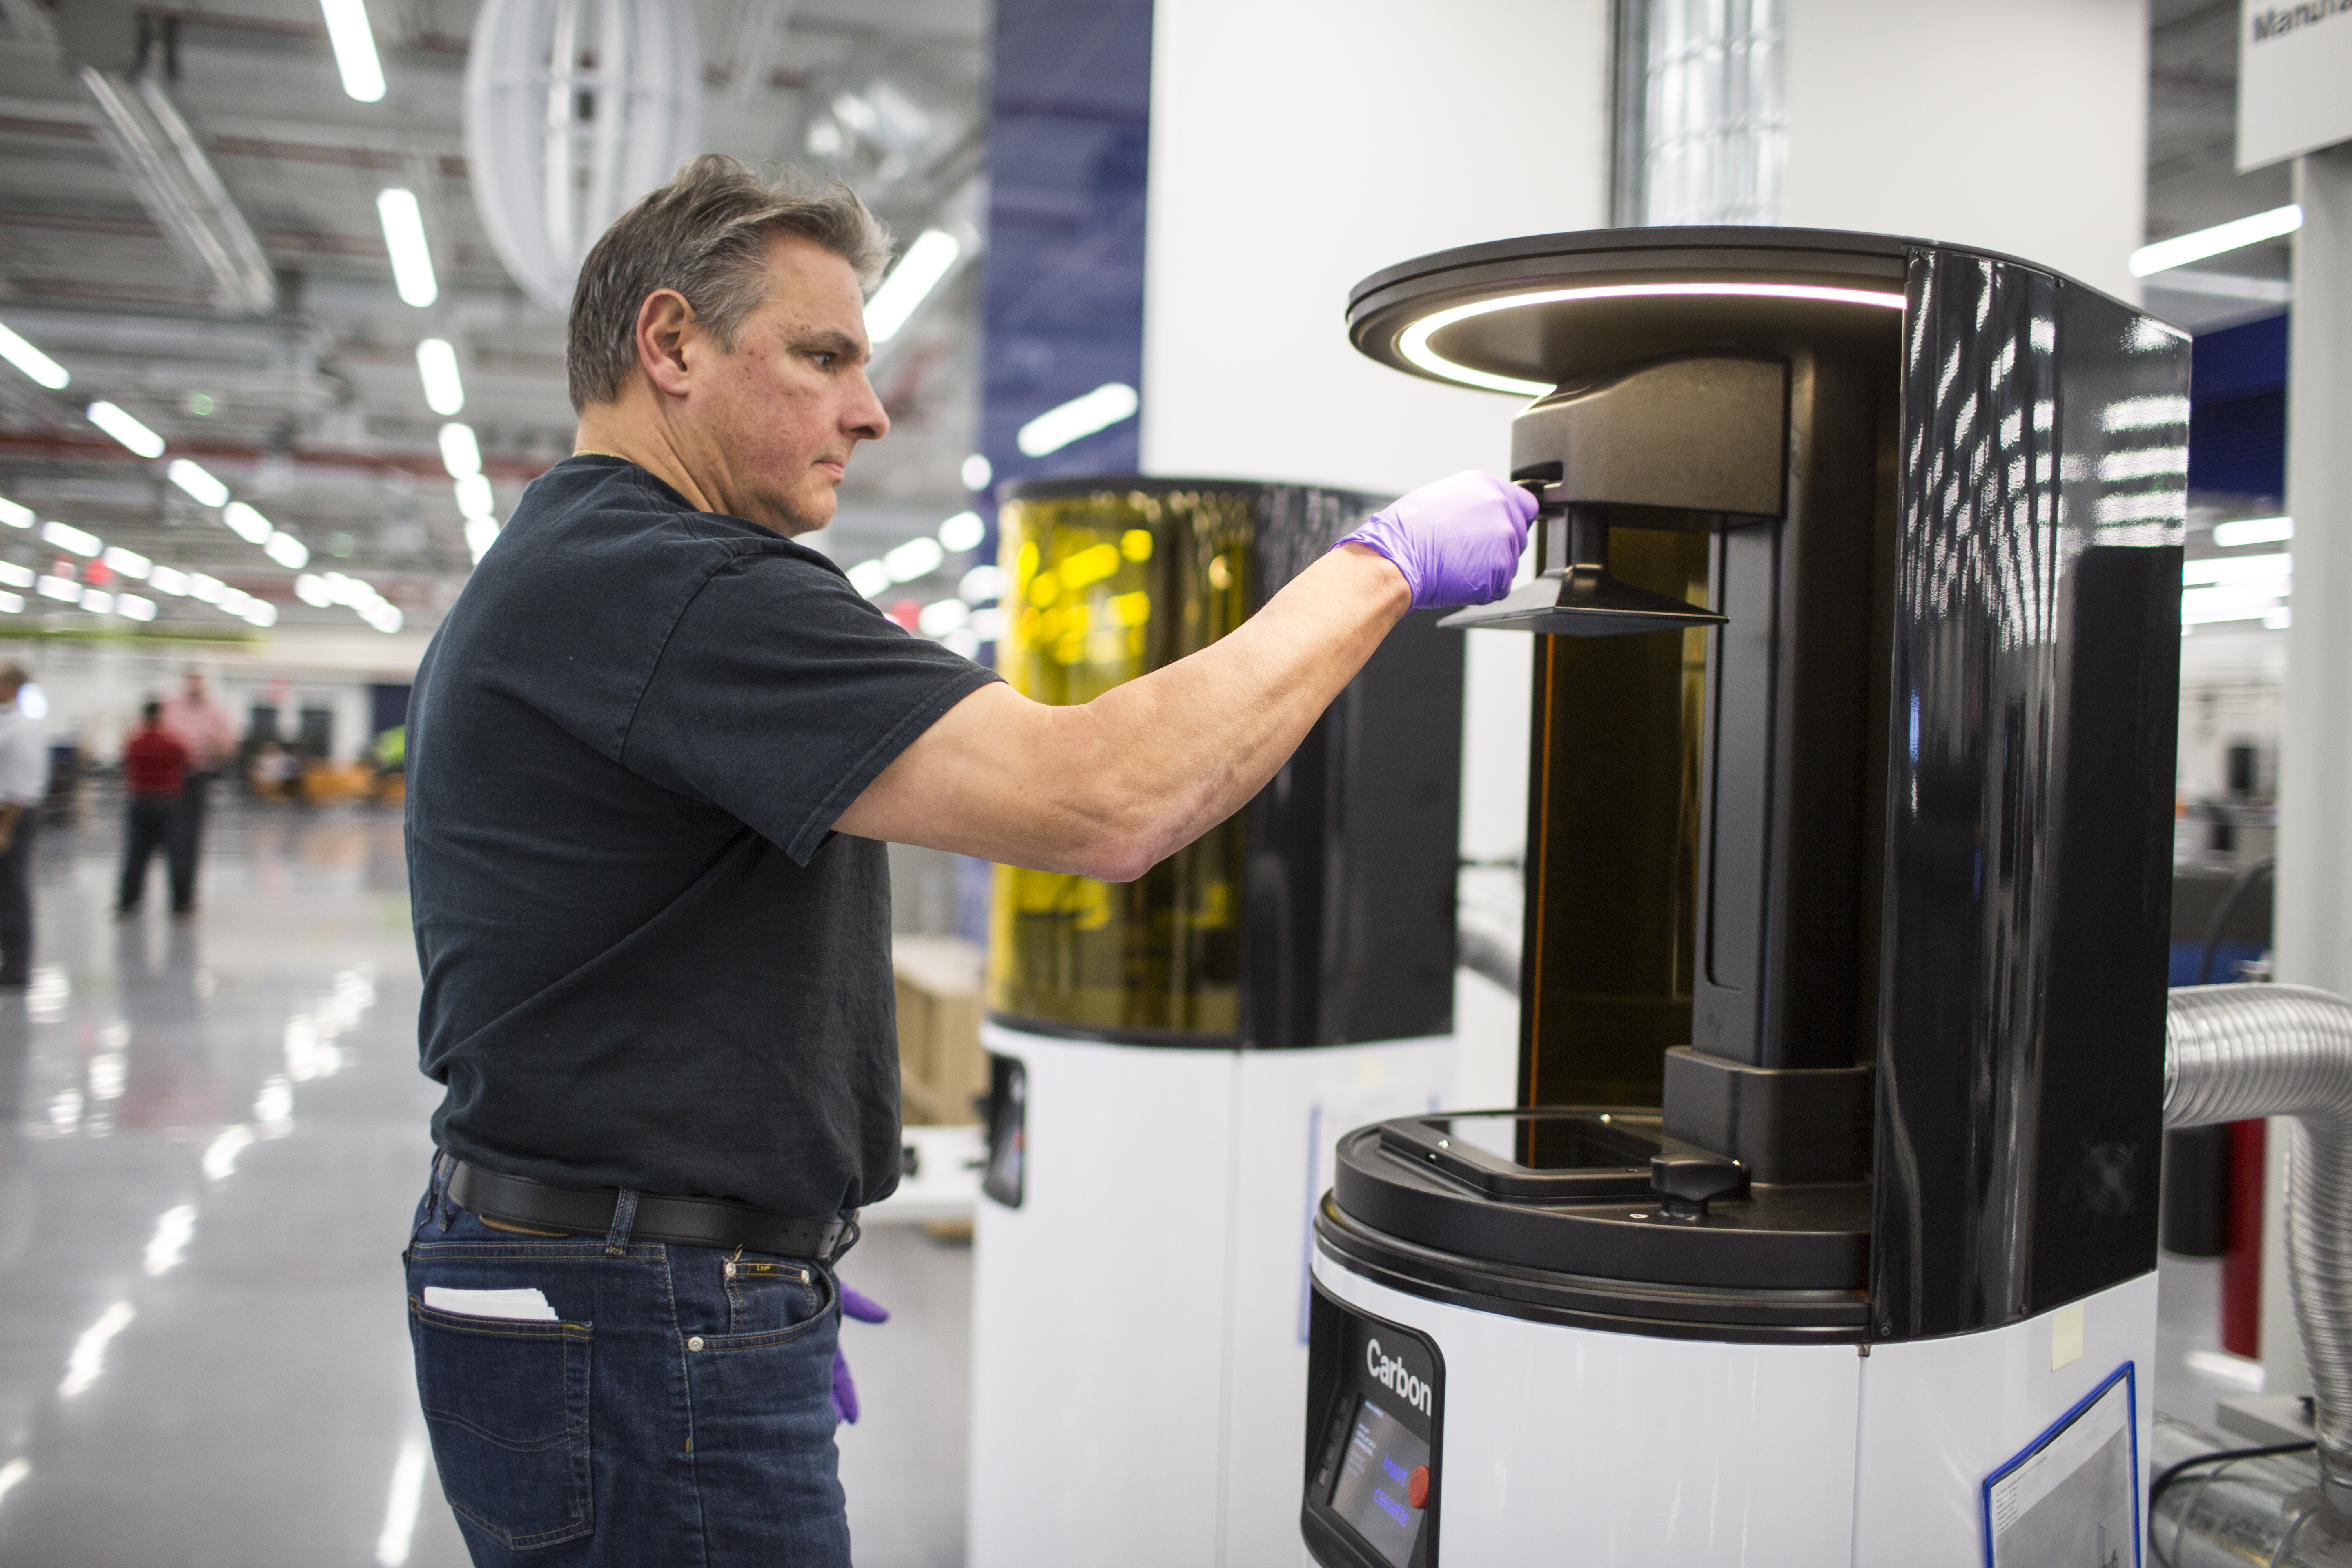 A Carbon 3D printer at Ford's recently opened Advanced Manufacturing Center in Redford, MI. (credit: Ford Motor Co.)